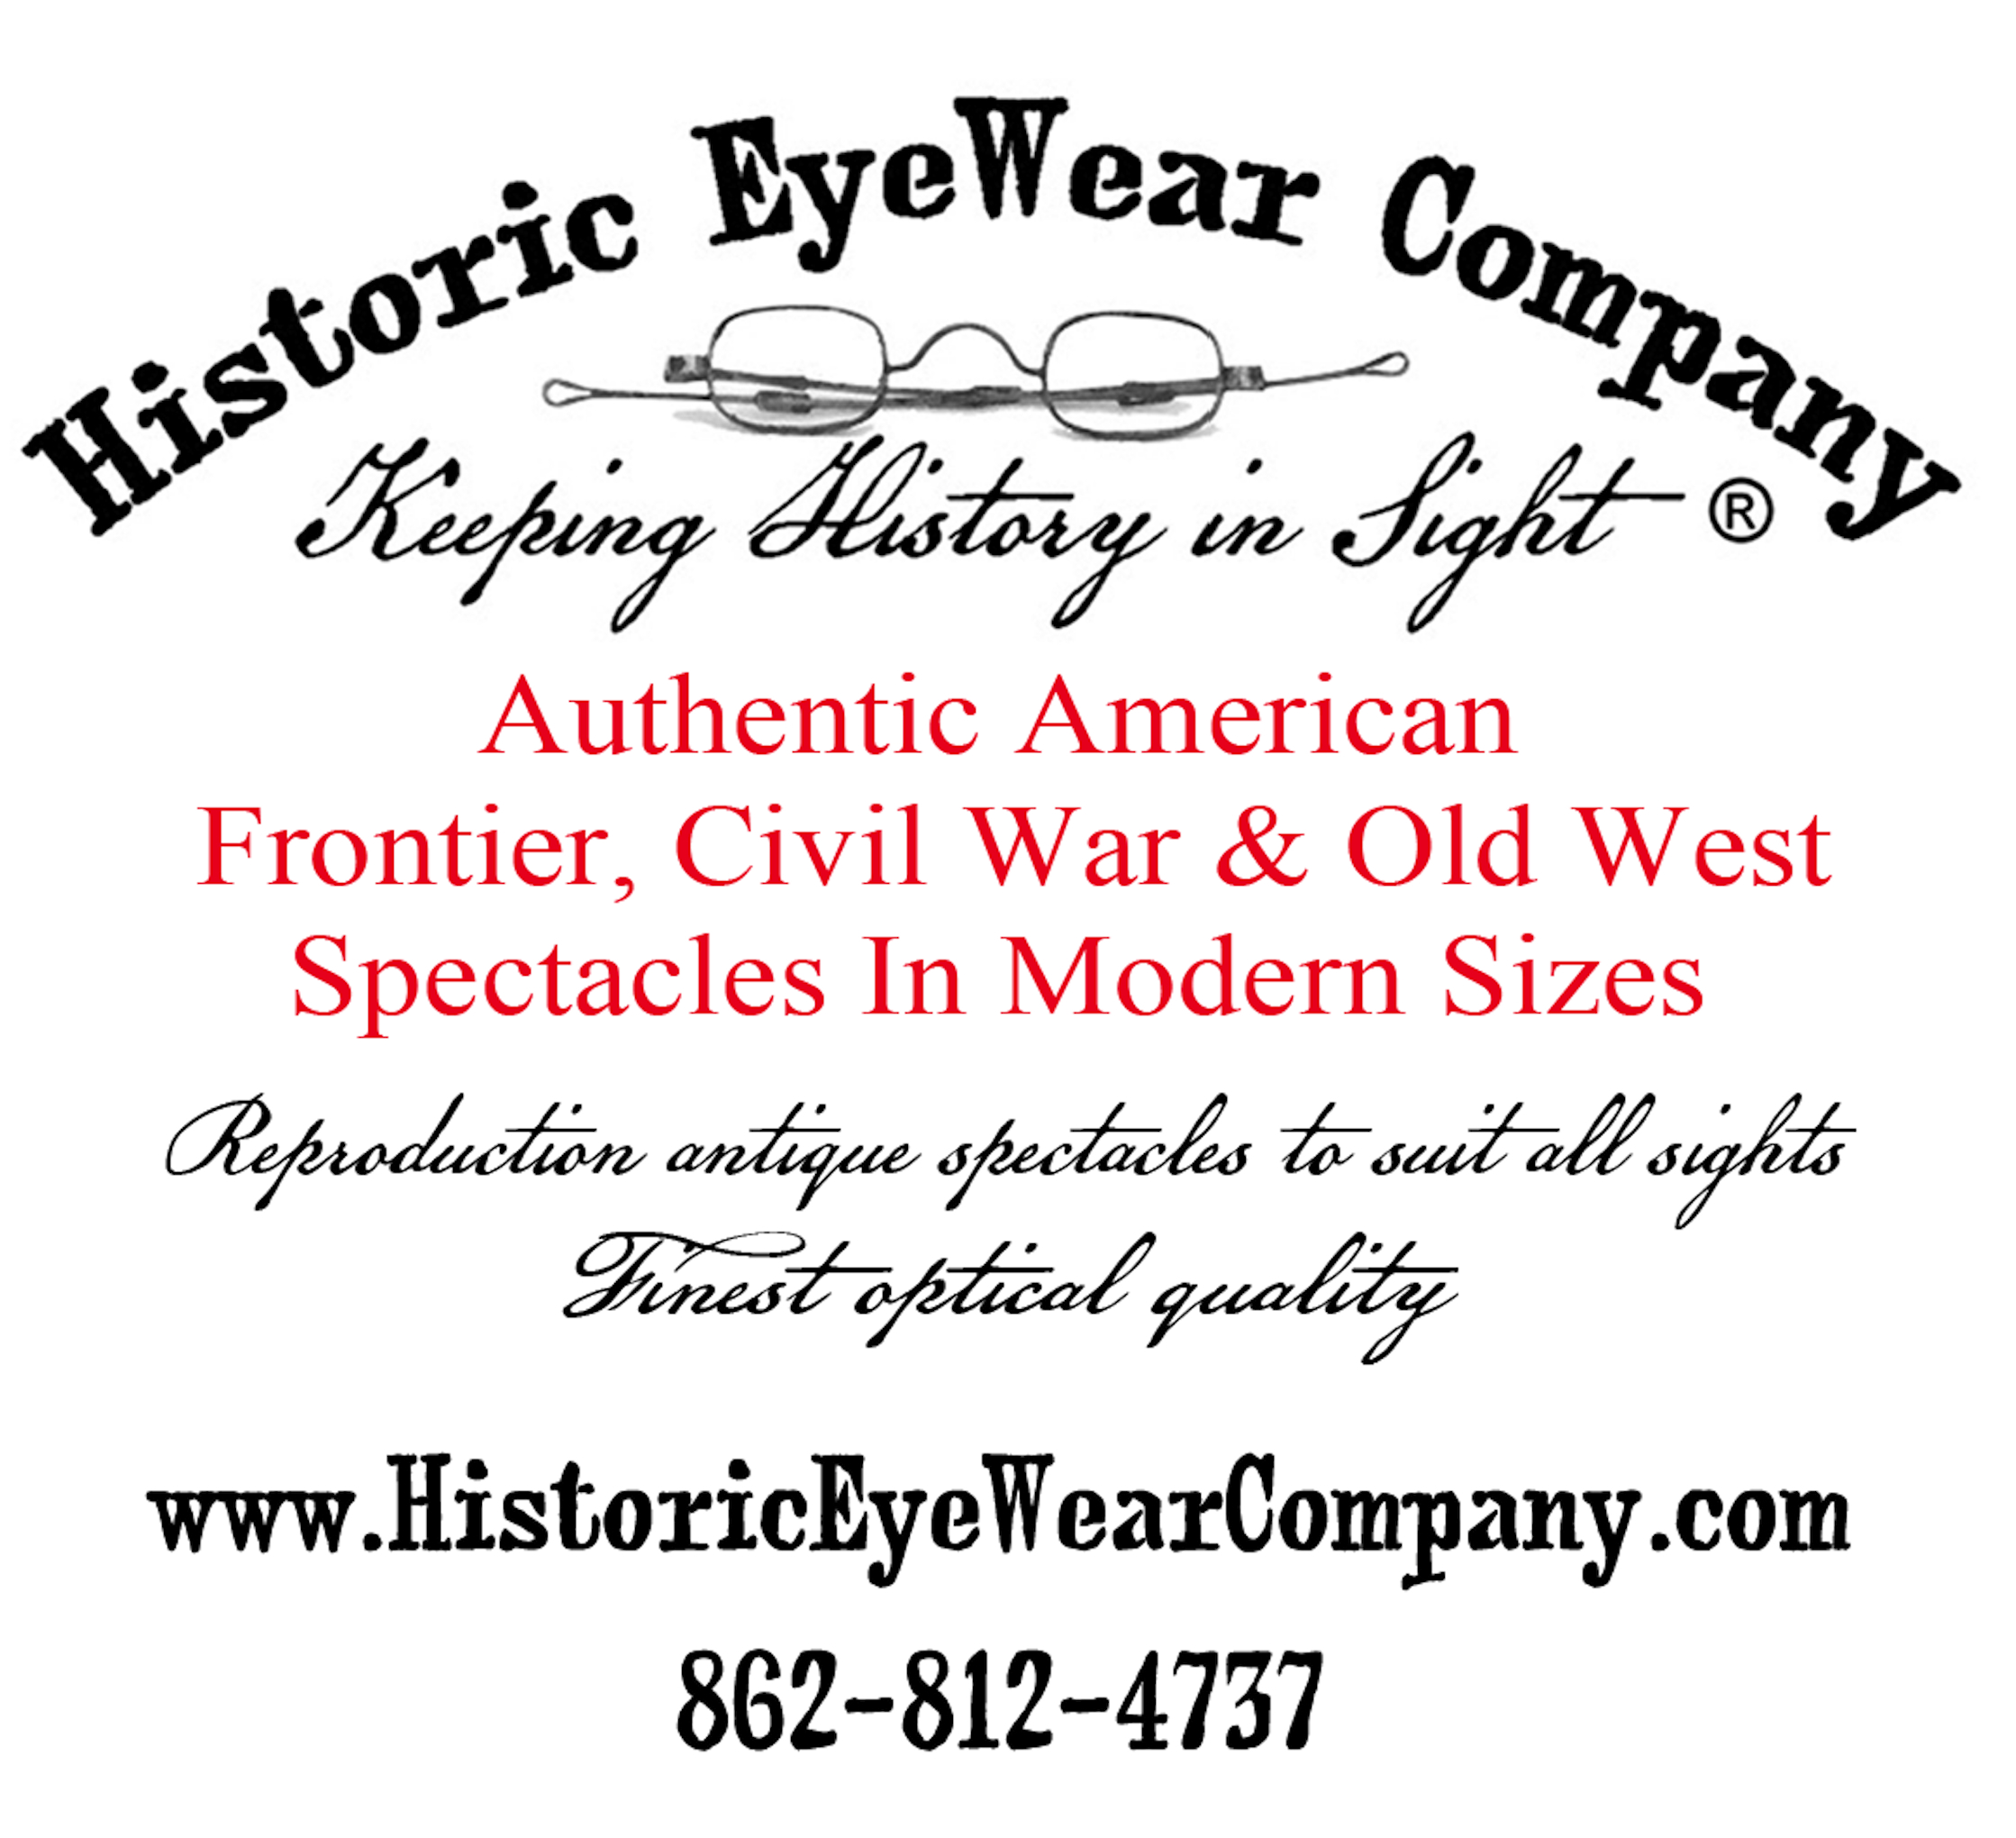 historiceyewearcompany